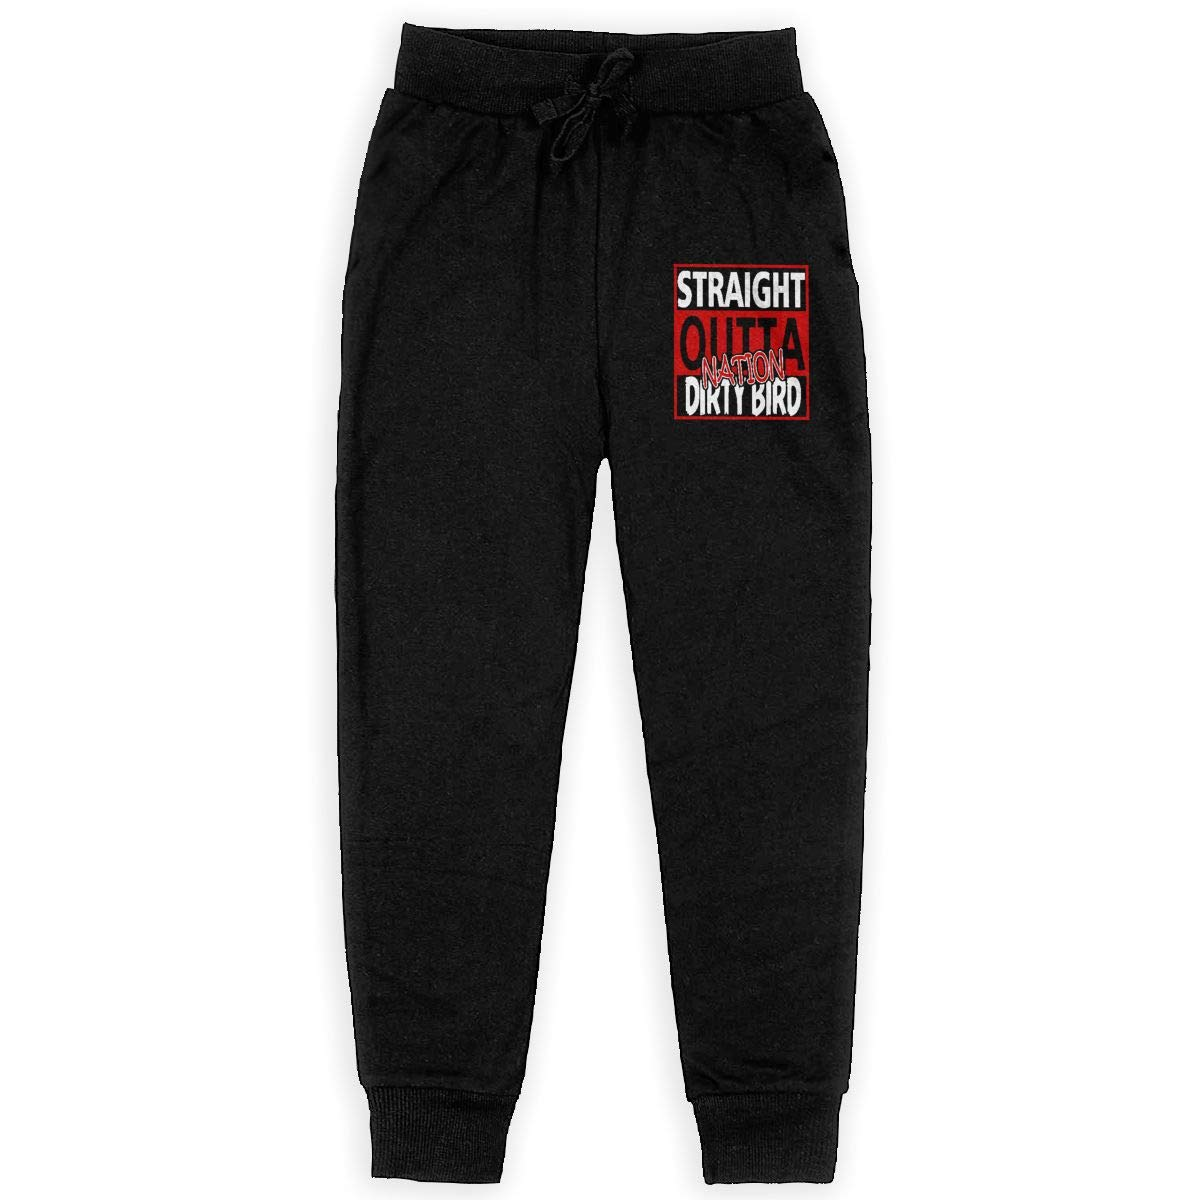 Outta Bird Nation Youth Trackpants